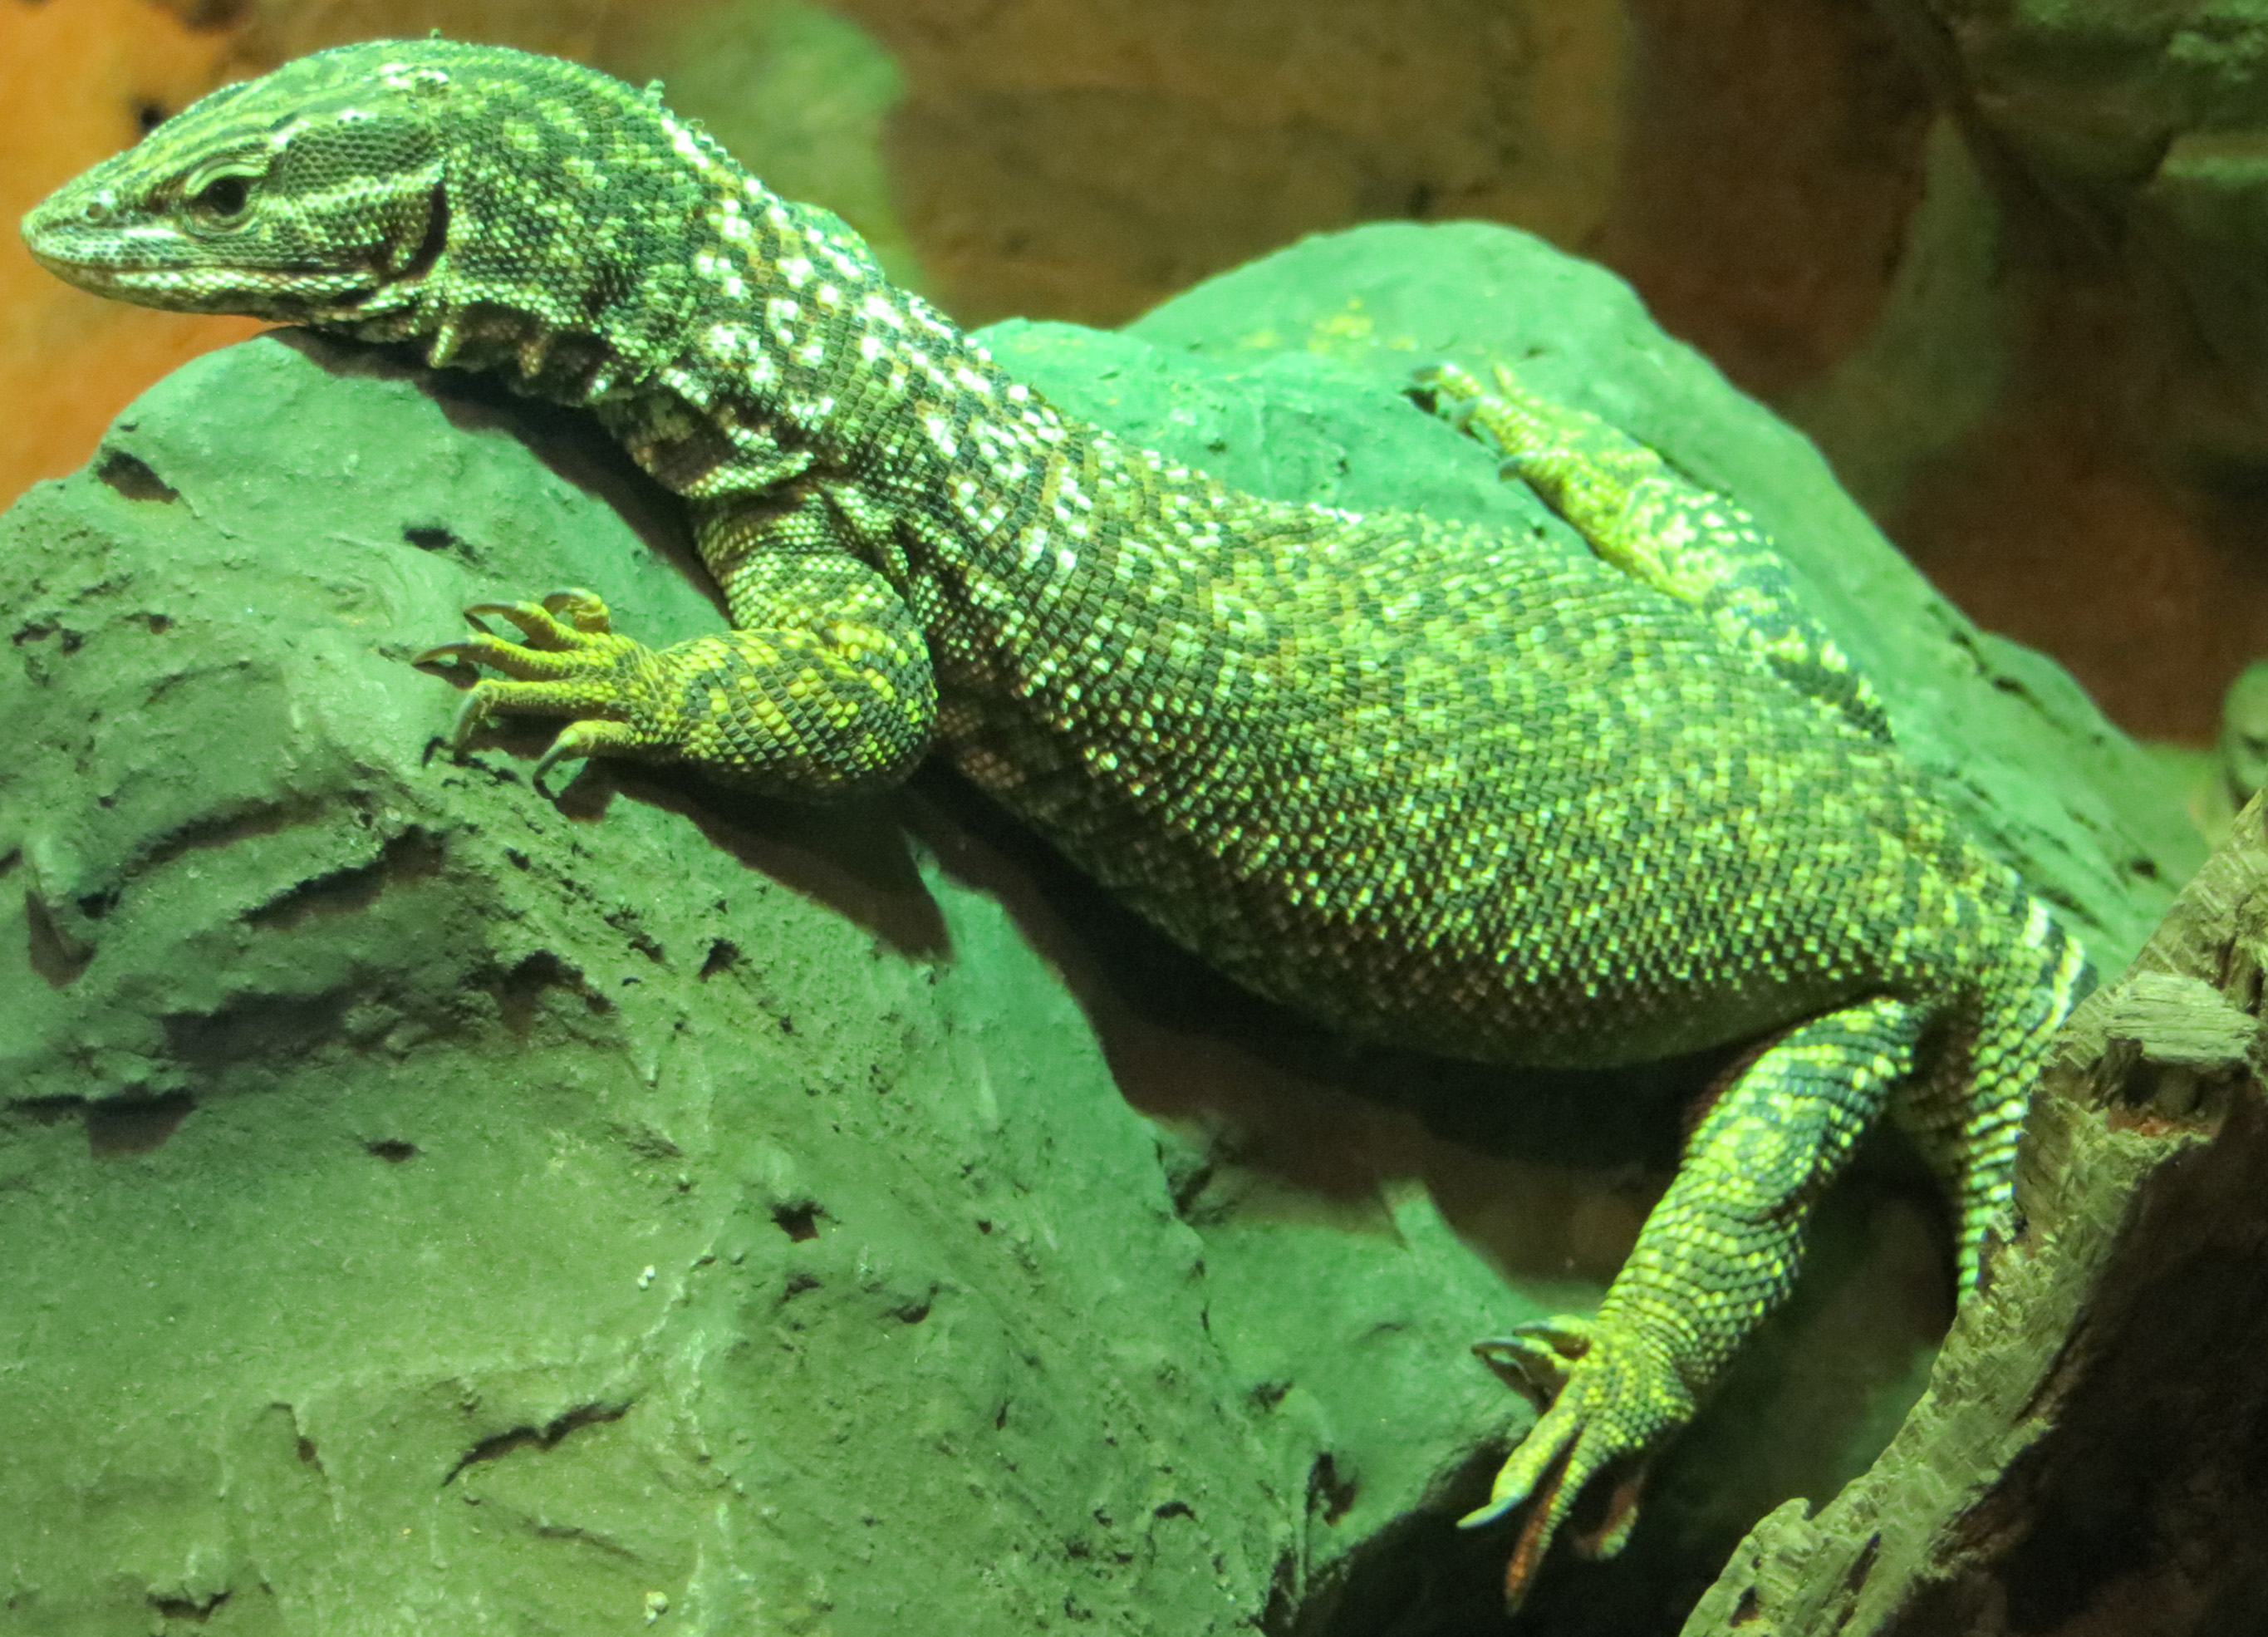 free stock photo of a bright green lizard